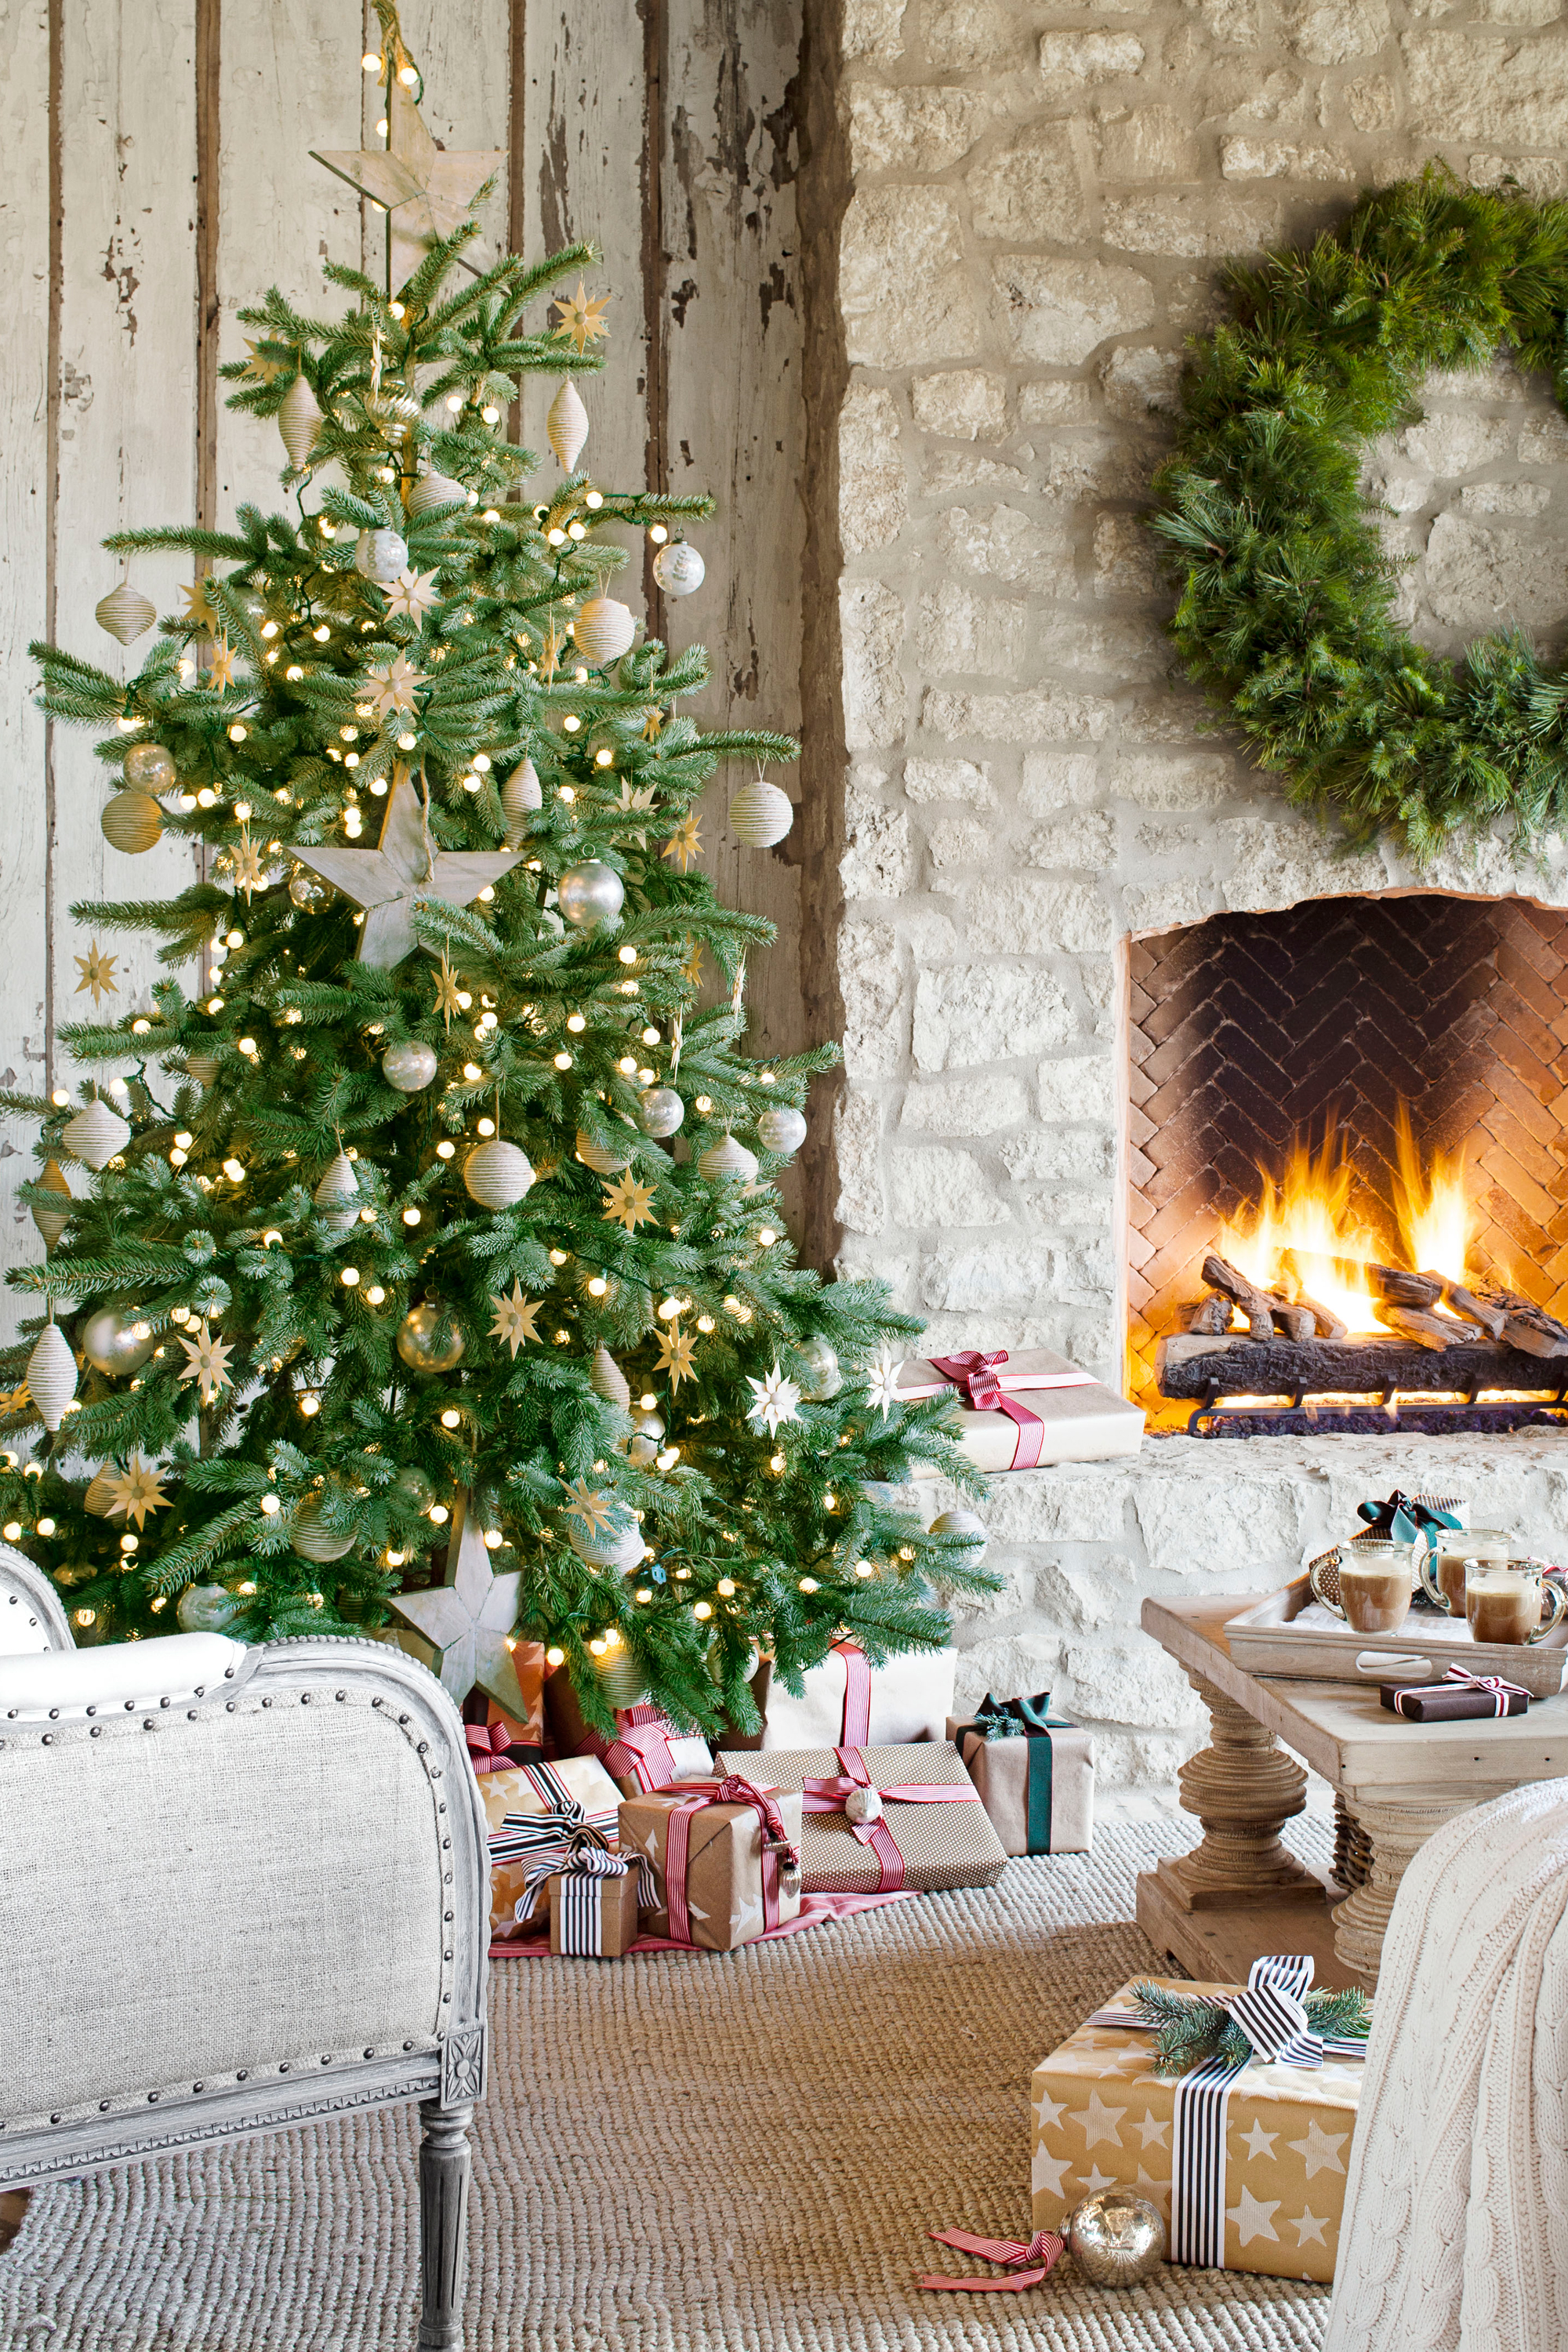 100 country christmas decorations holiday decorating ideas 2017 - Decorating Your House For Christmas